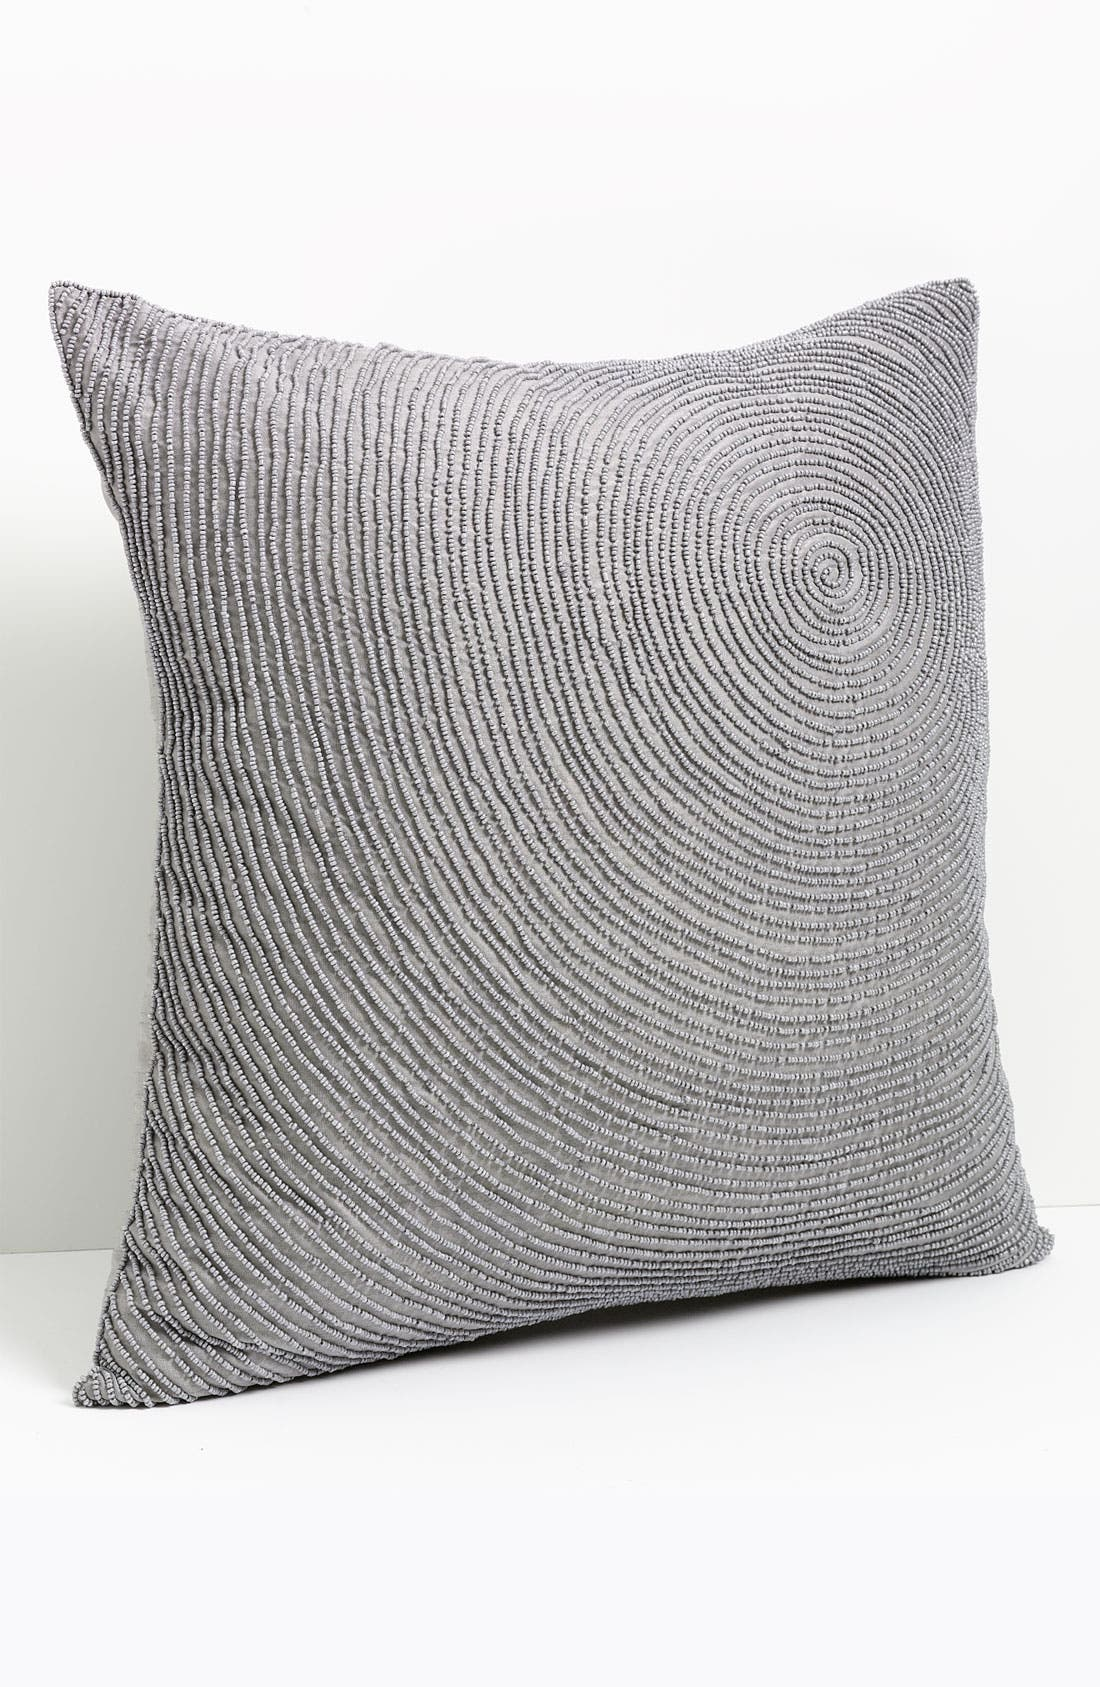 Alternate Image 1 Selected - Nordstrom at Home Circle Beaded Pillow